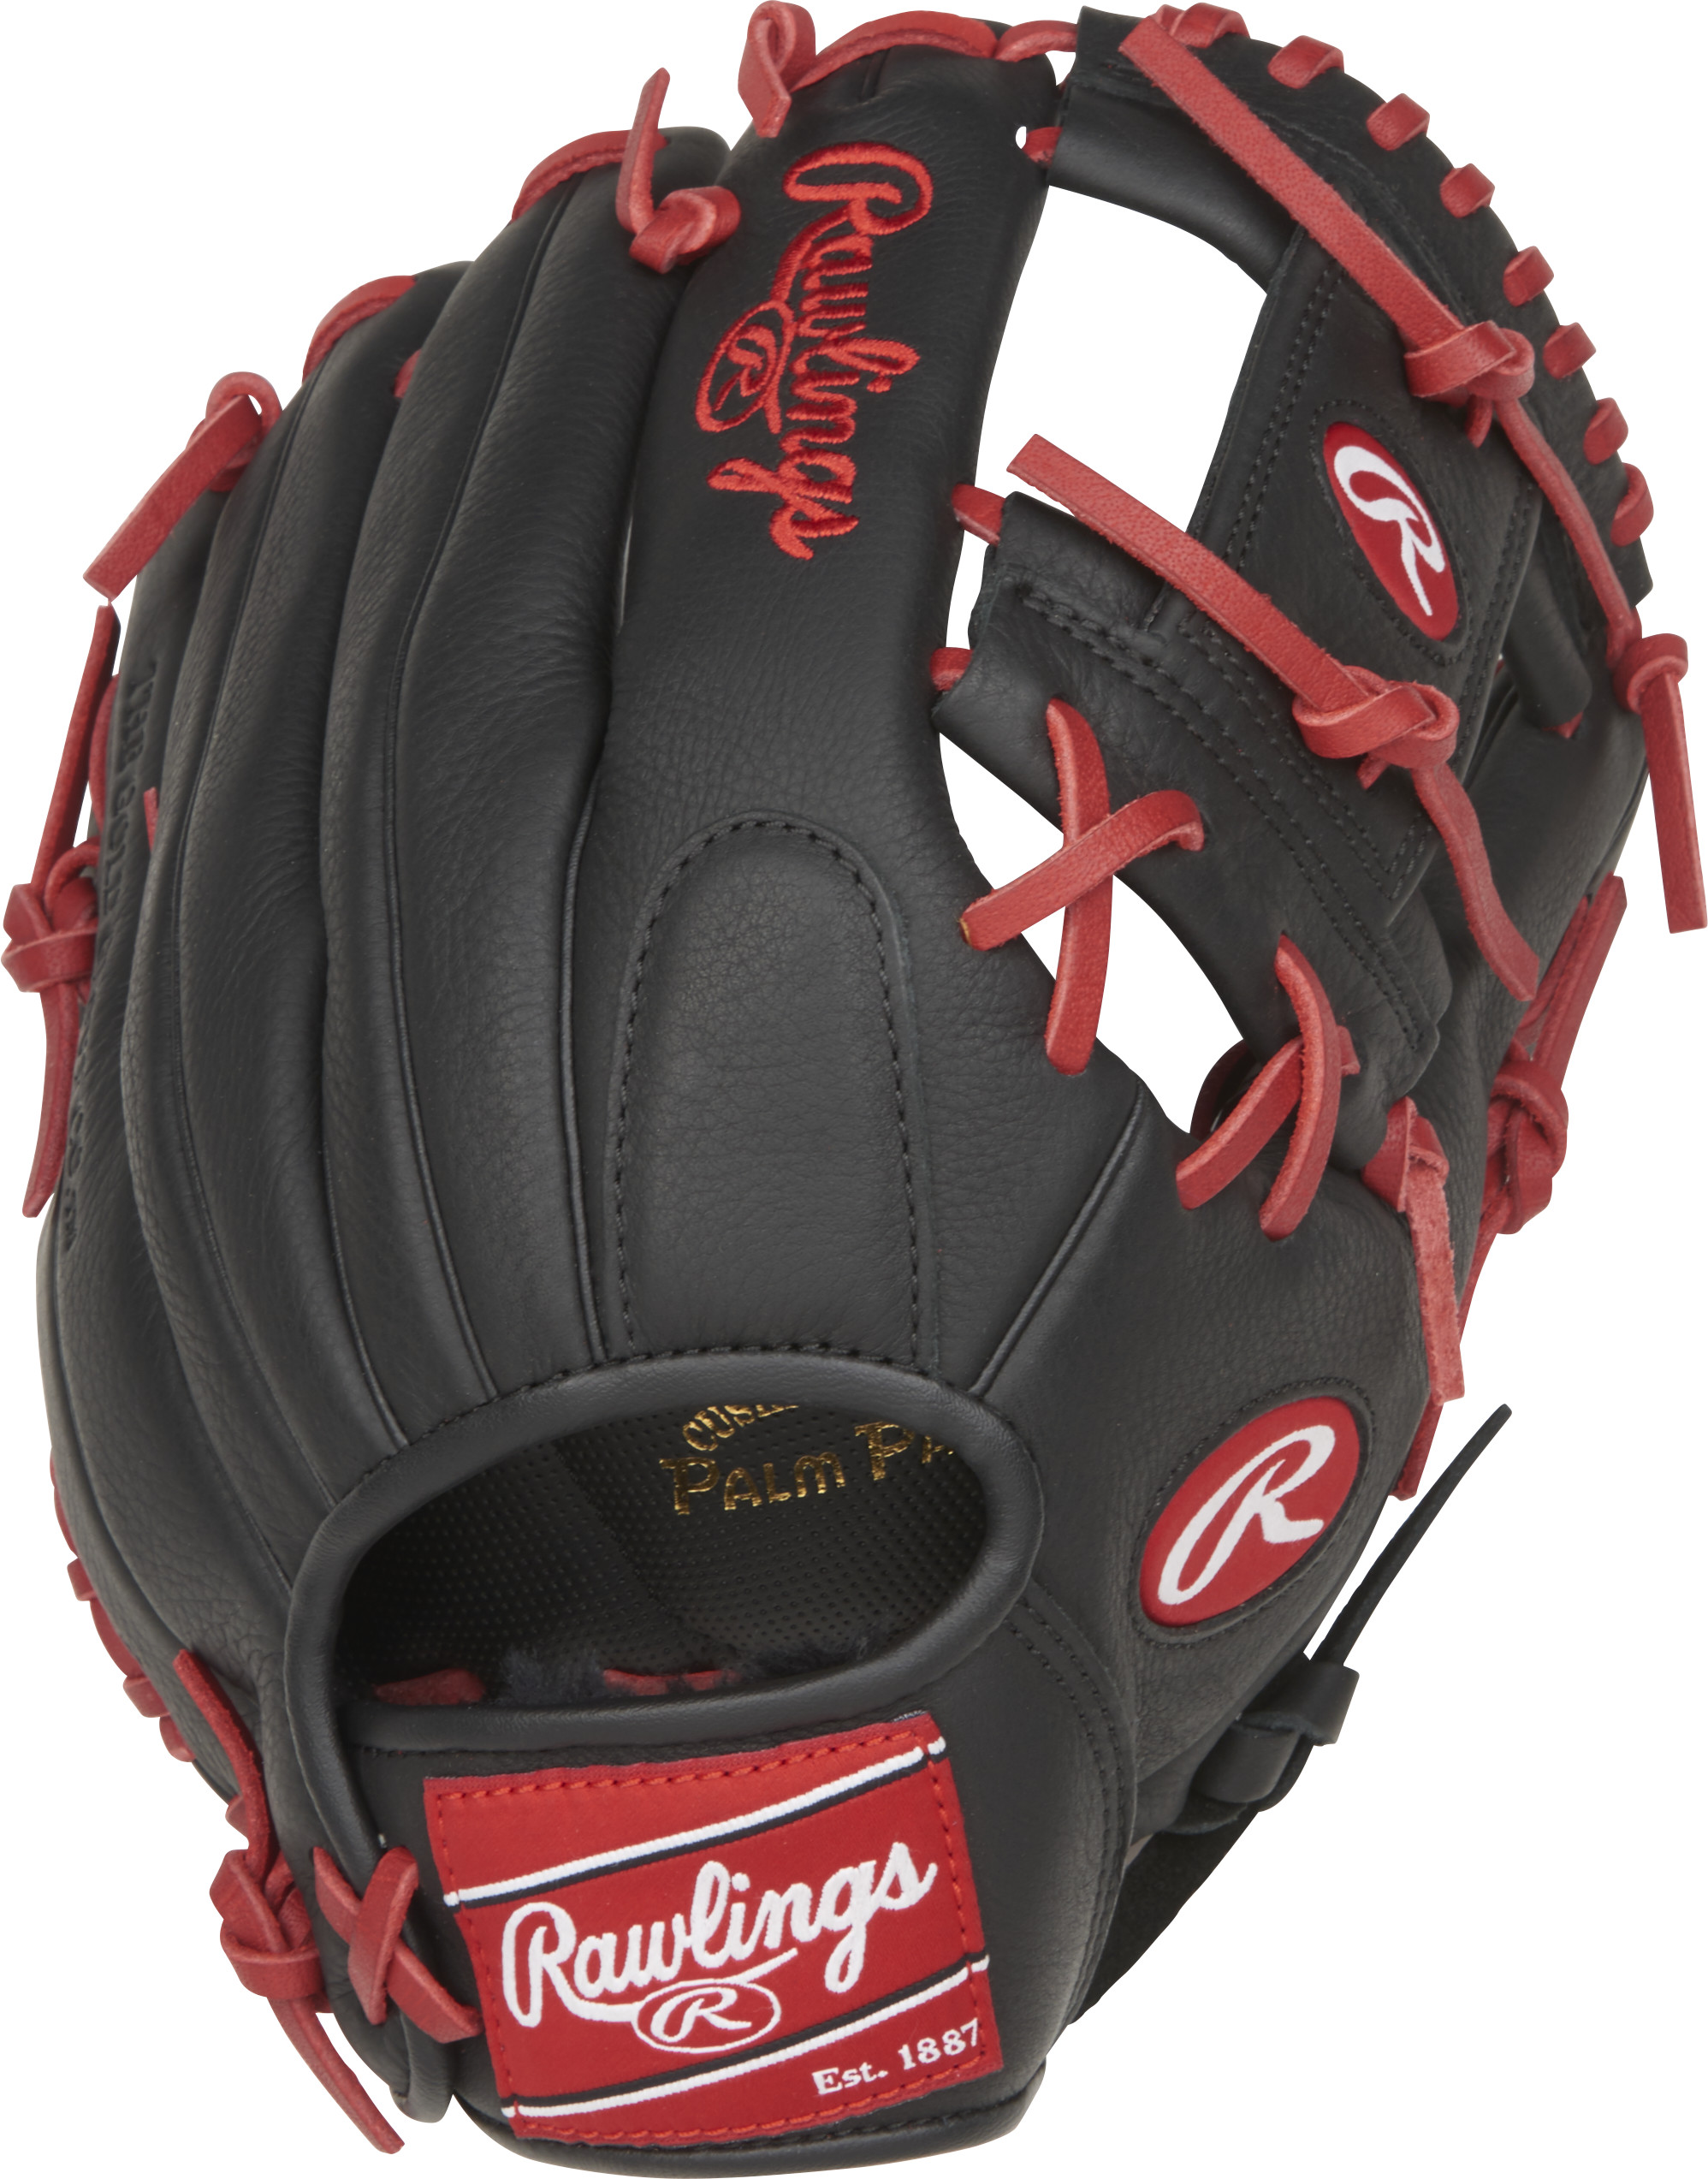 http://www.bestbatdeals.com/images/gloves/rawlings/SPL150FL-2.jpg